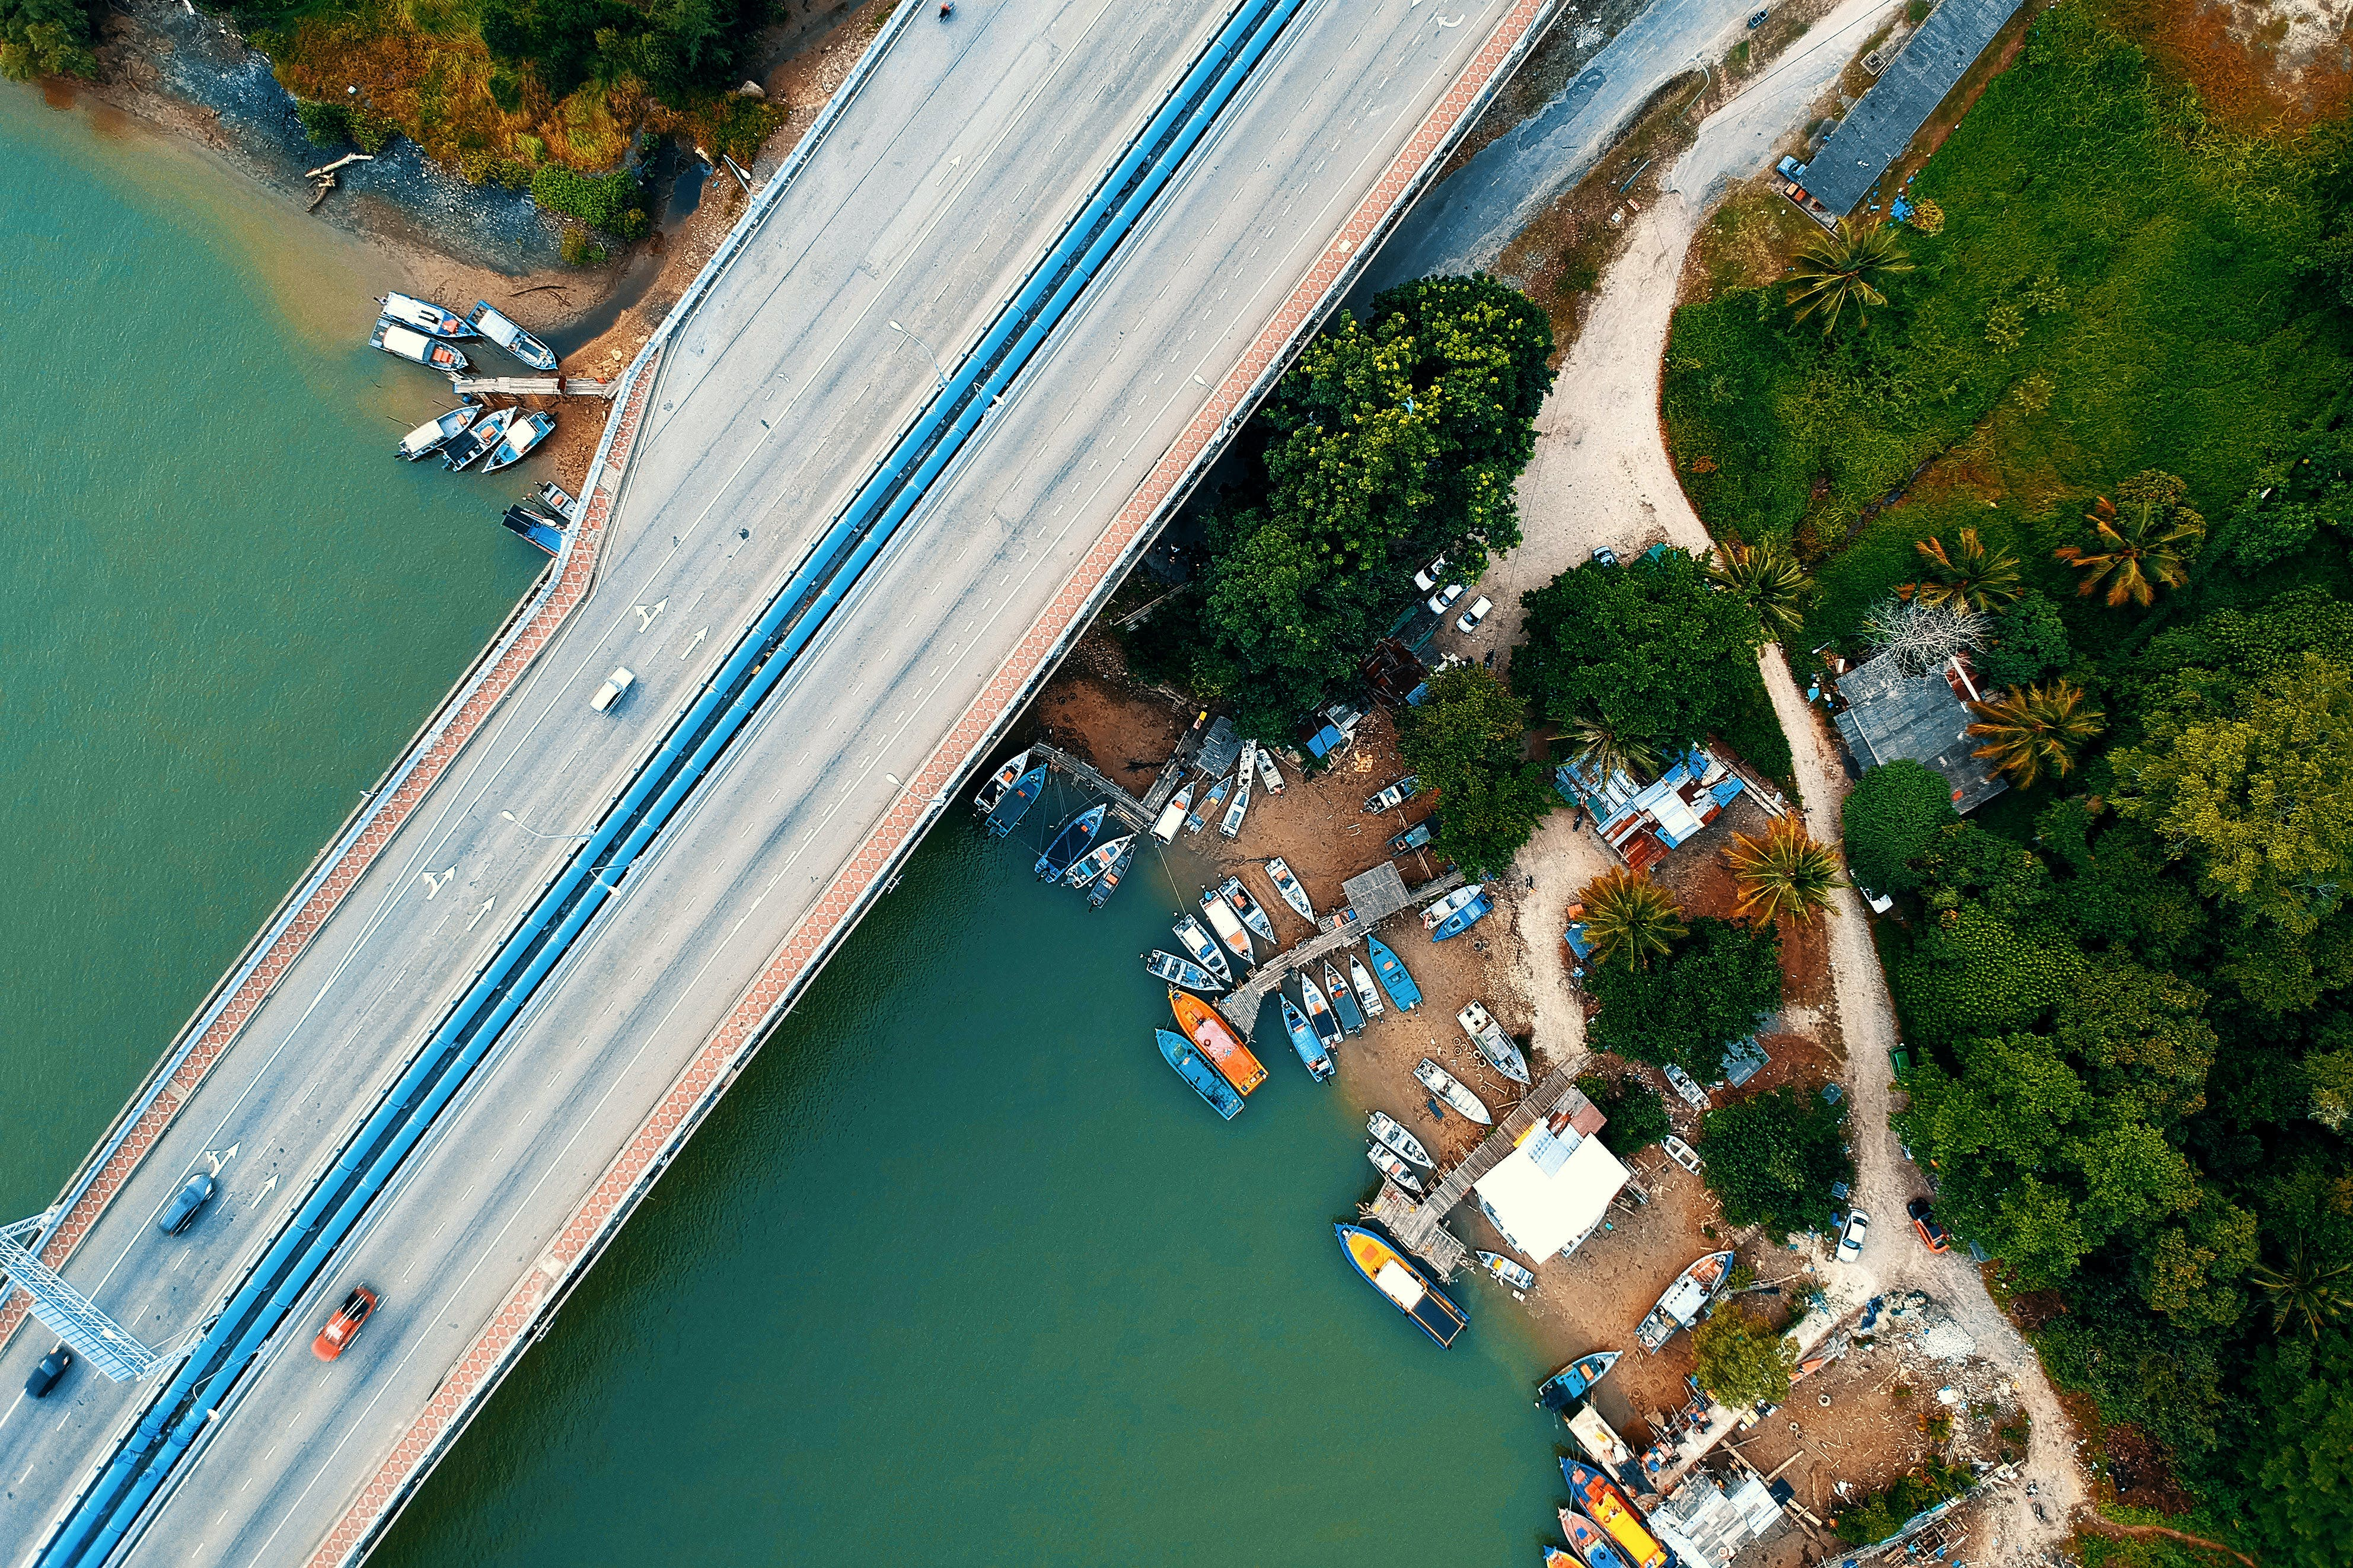 Aerial Photo Photography of Vehicle Passing Through the Bridge